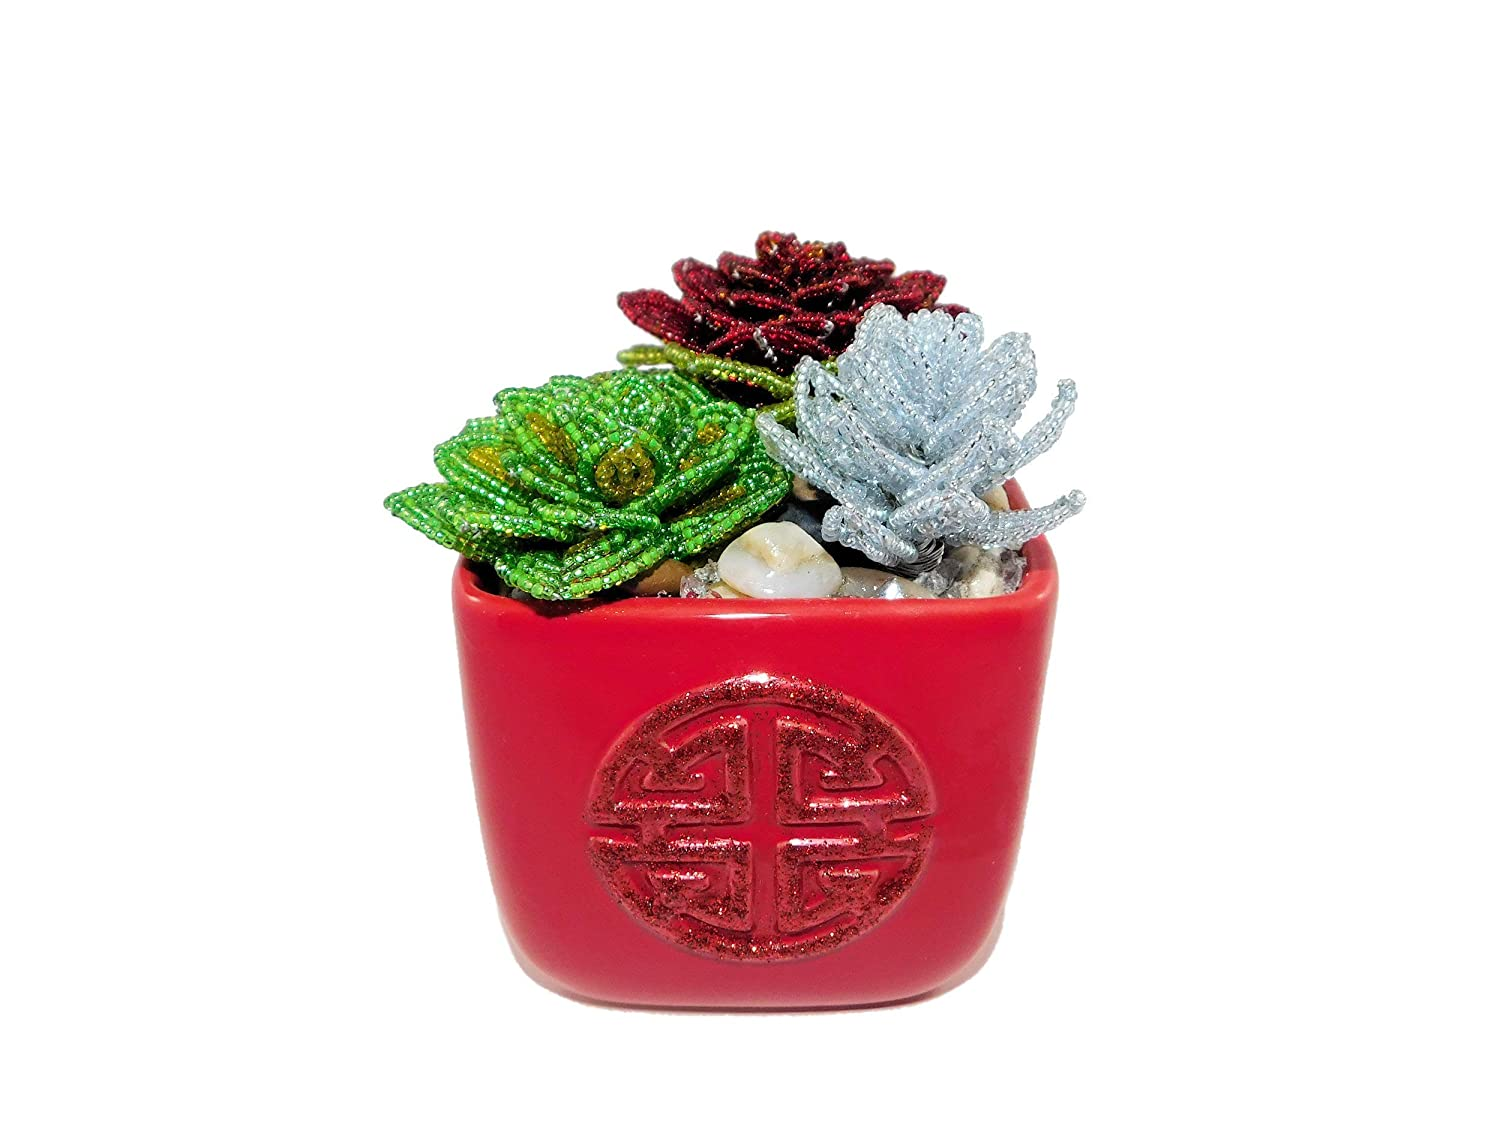 Max 42% OFF 4.5 Inch Handmade Beaded Mixed Artifi Pot. Super beauty product restock quality top in Succulents Ceramic